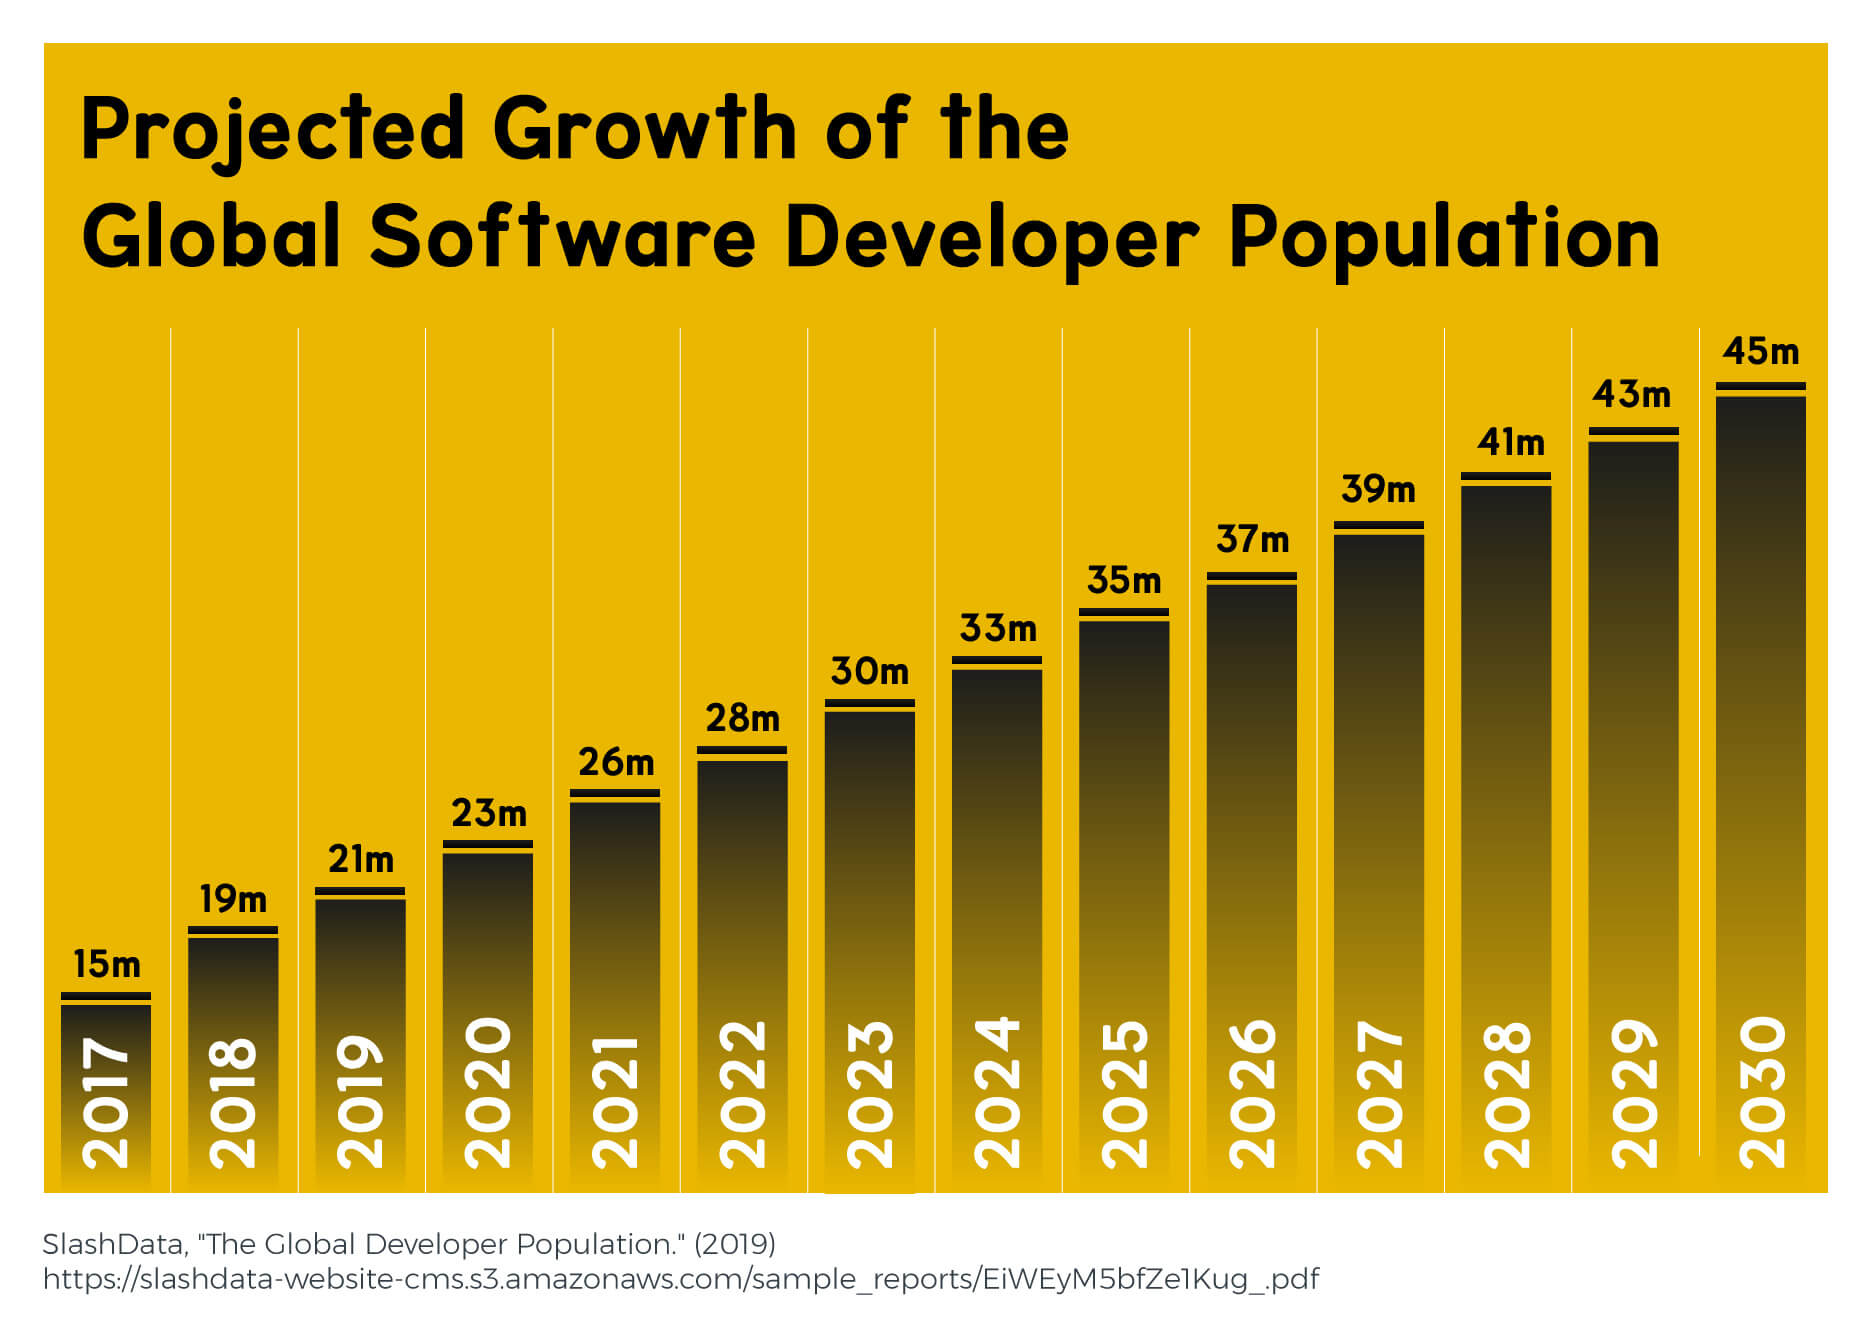 A chart showing the projected growth of the software developer population